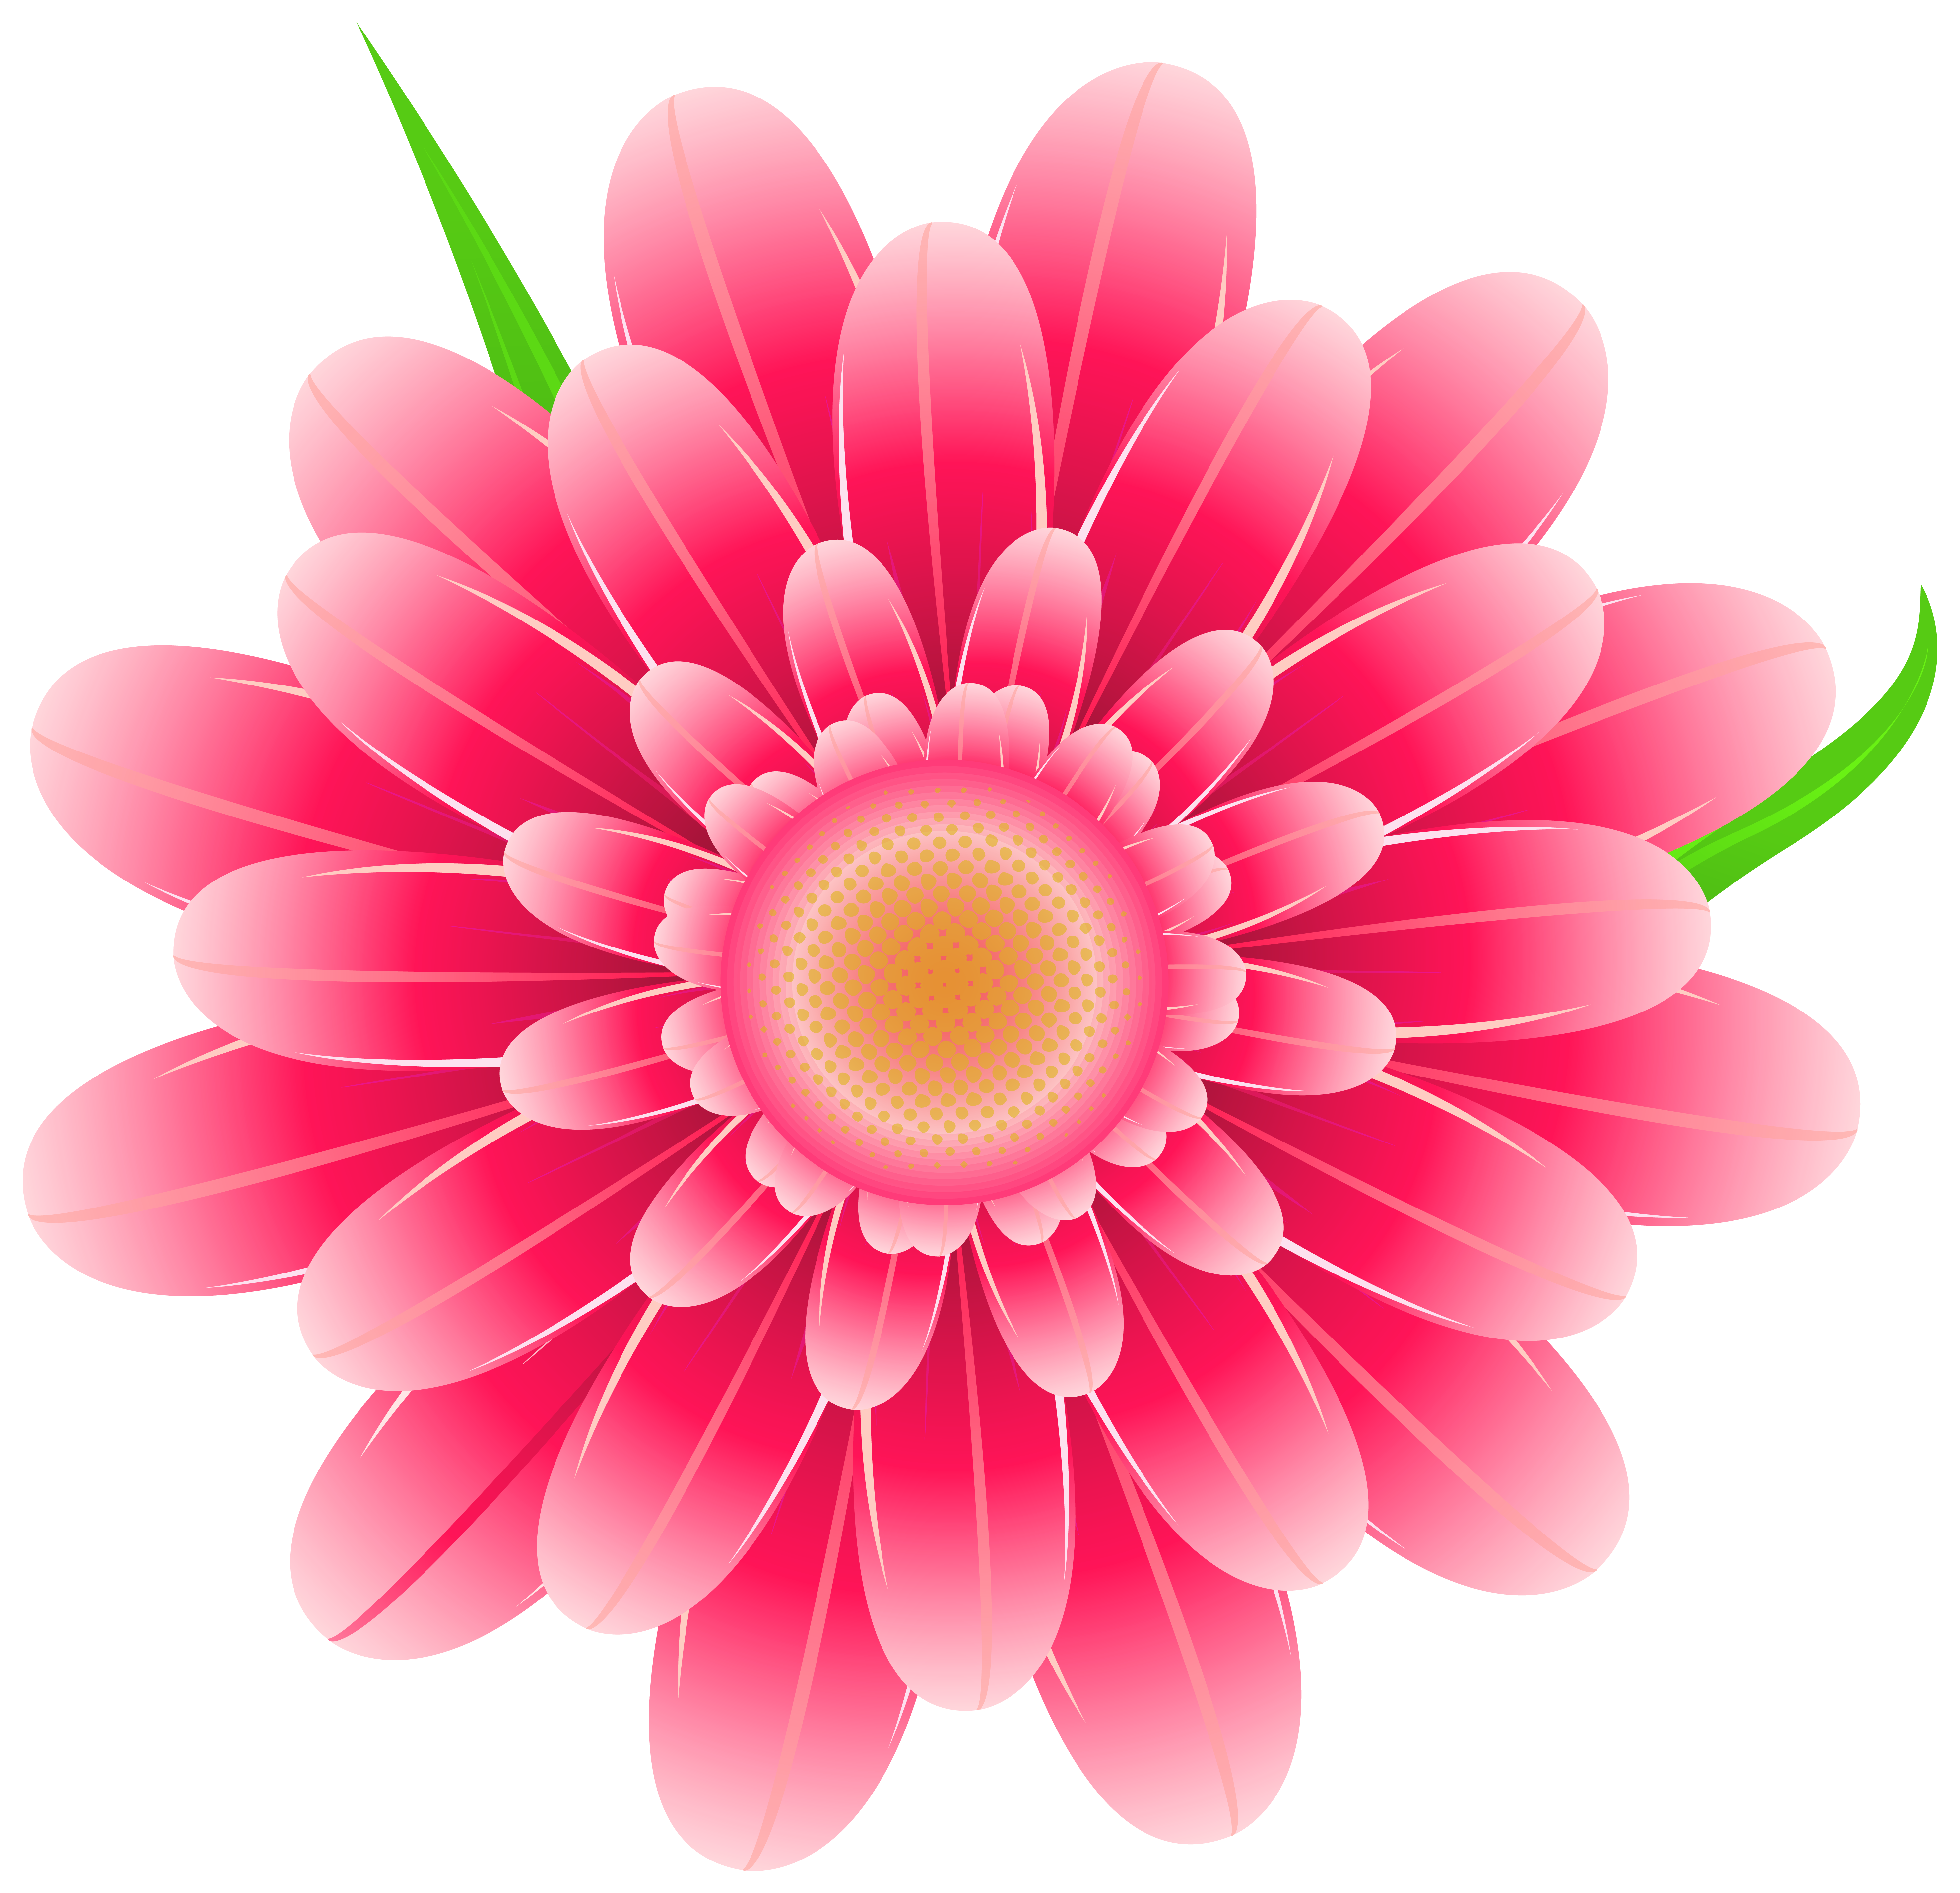 Flower Clipart Png - Transparent Pink Flower Clipart PNG Image | Gallery Yopriceville ...